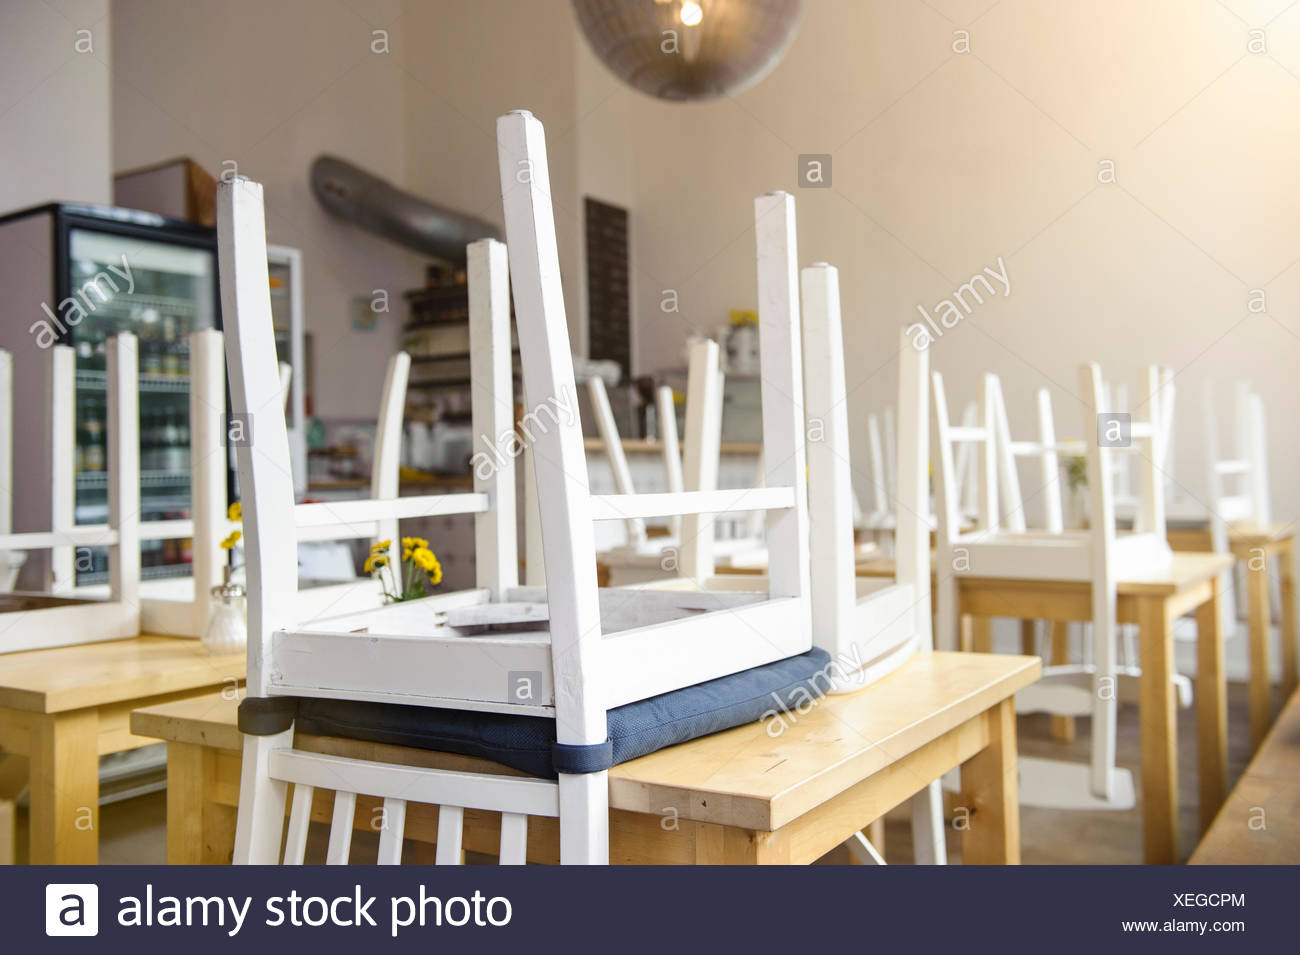 chair upside down on wall memory foam kitchen pads the table stock photos and